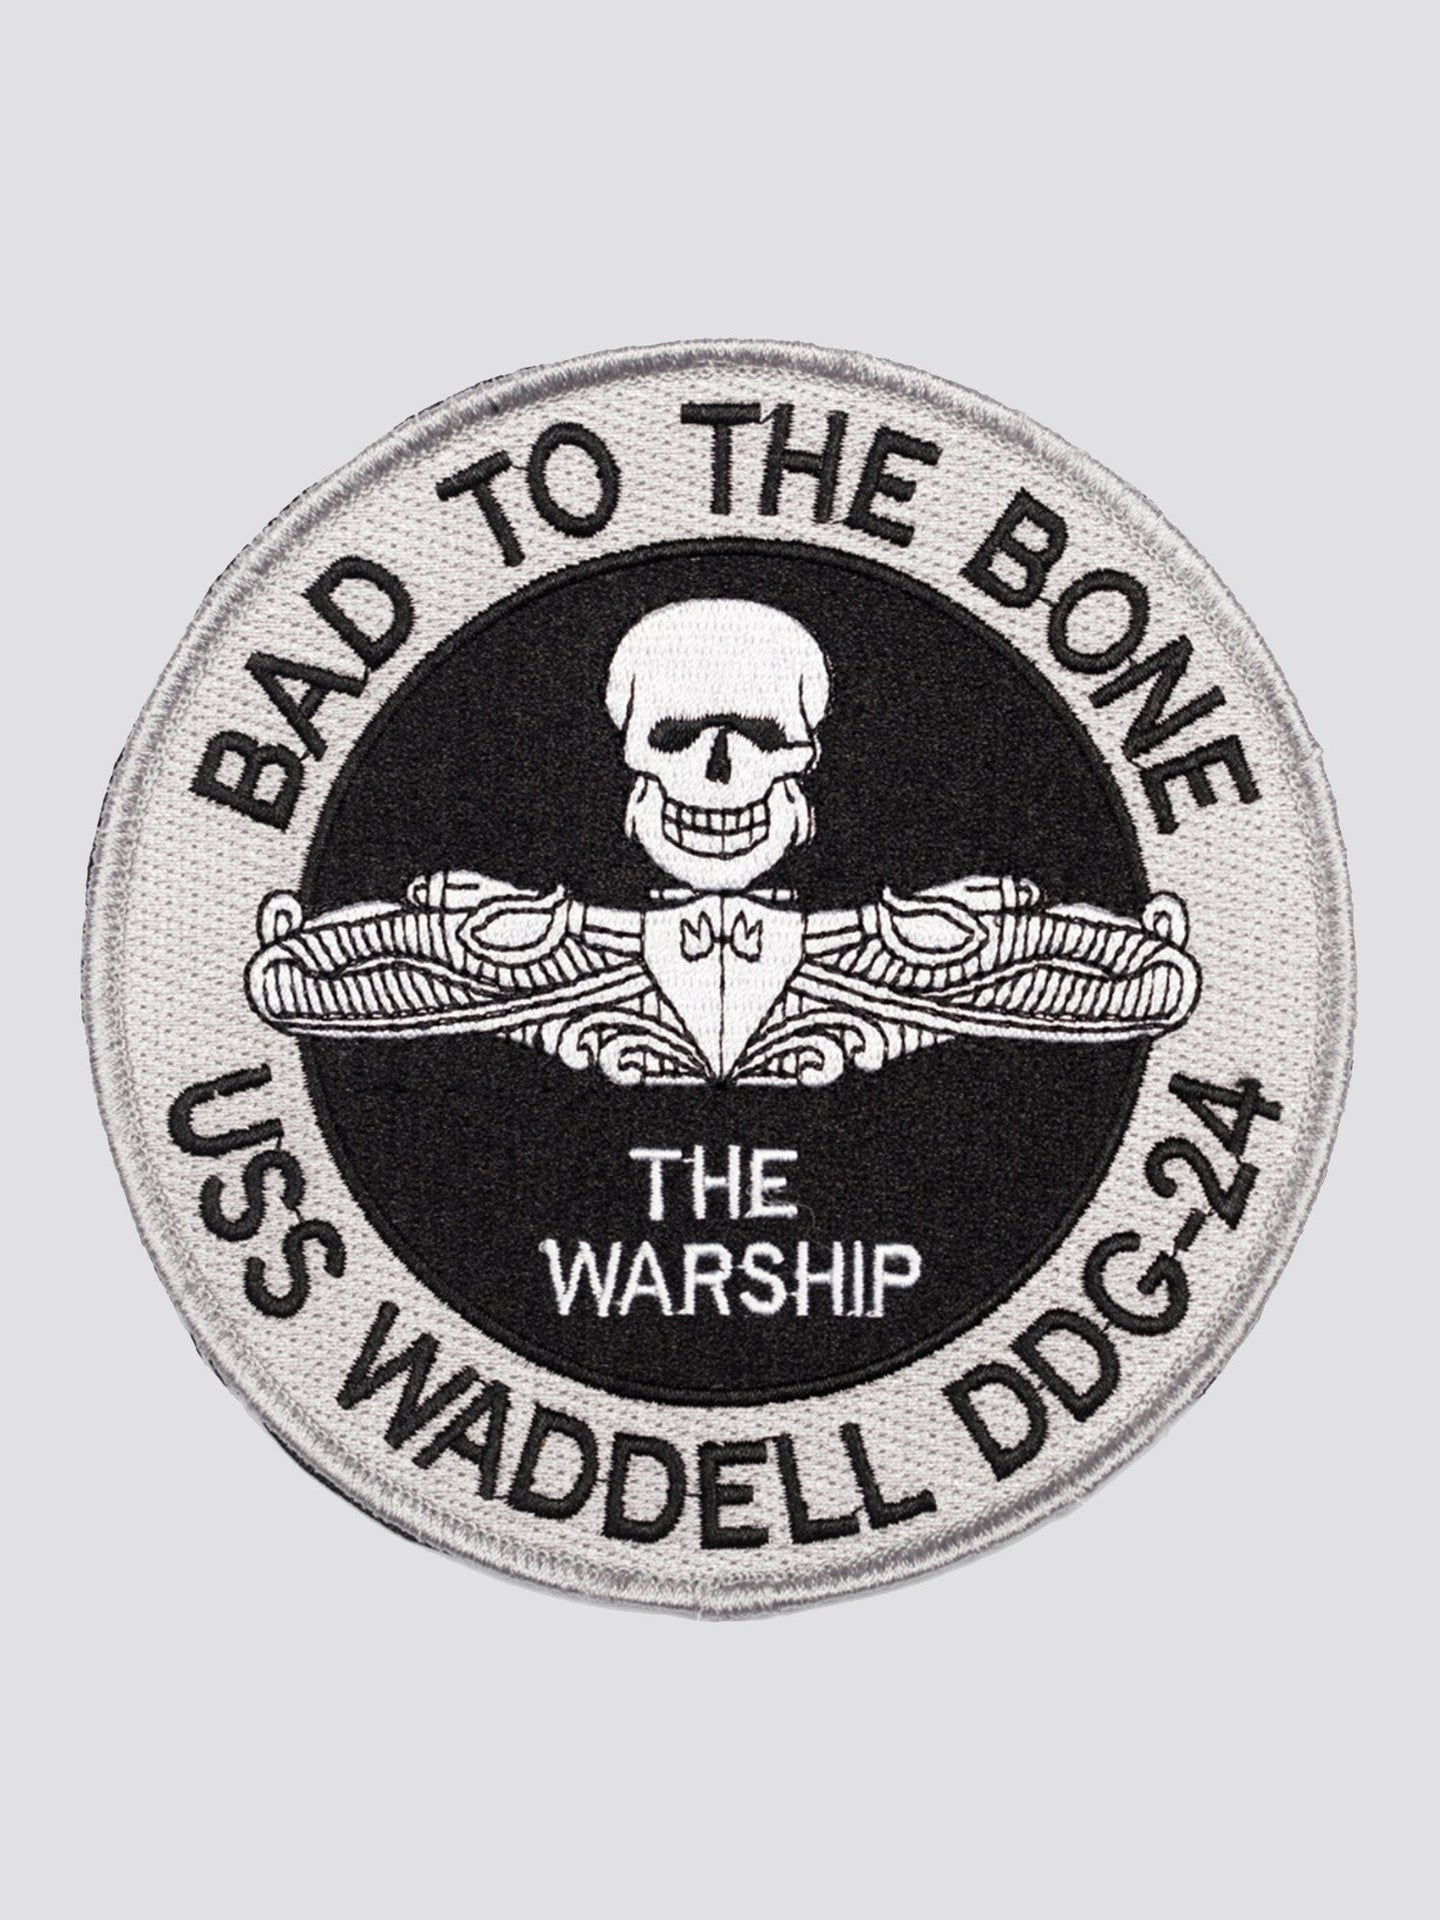 DDG-24 USS WADDELL MISSILE DESTROY BAD ACCESSORY Alpha Industries BLACK 0